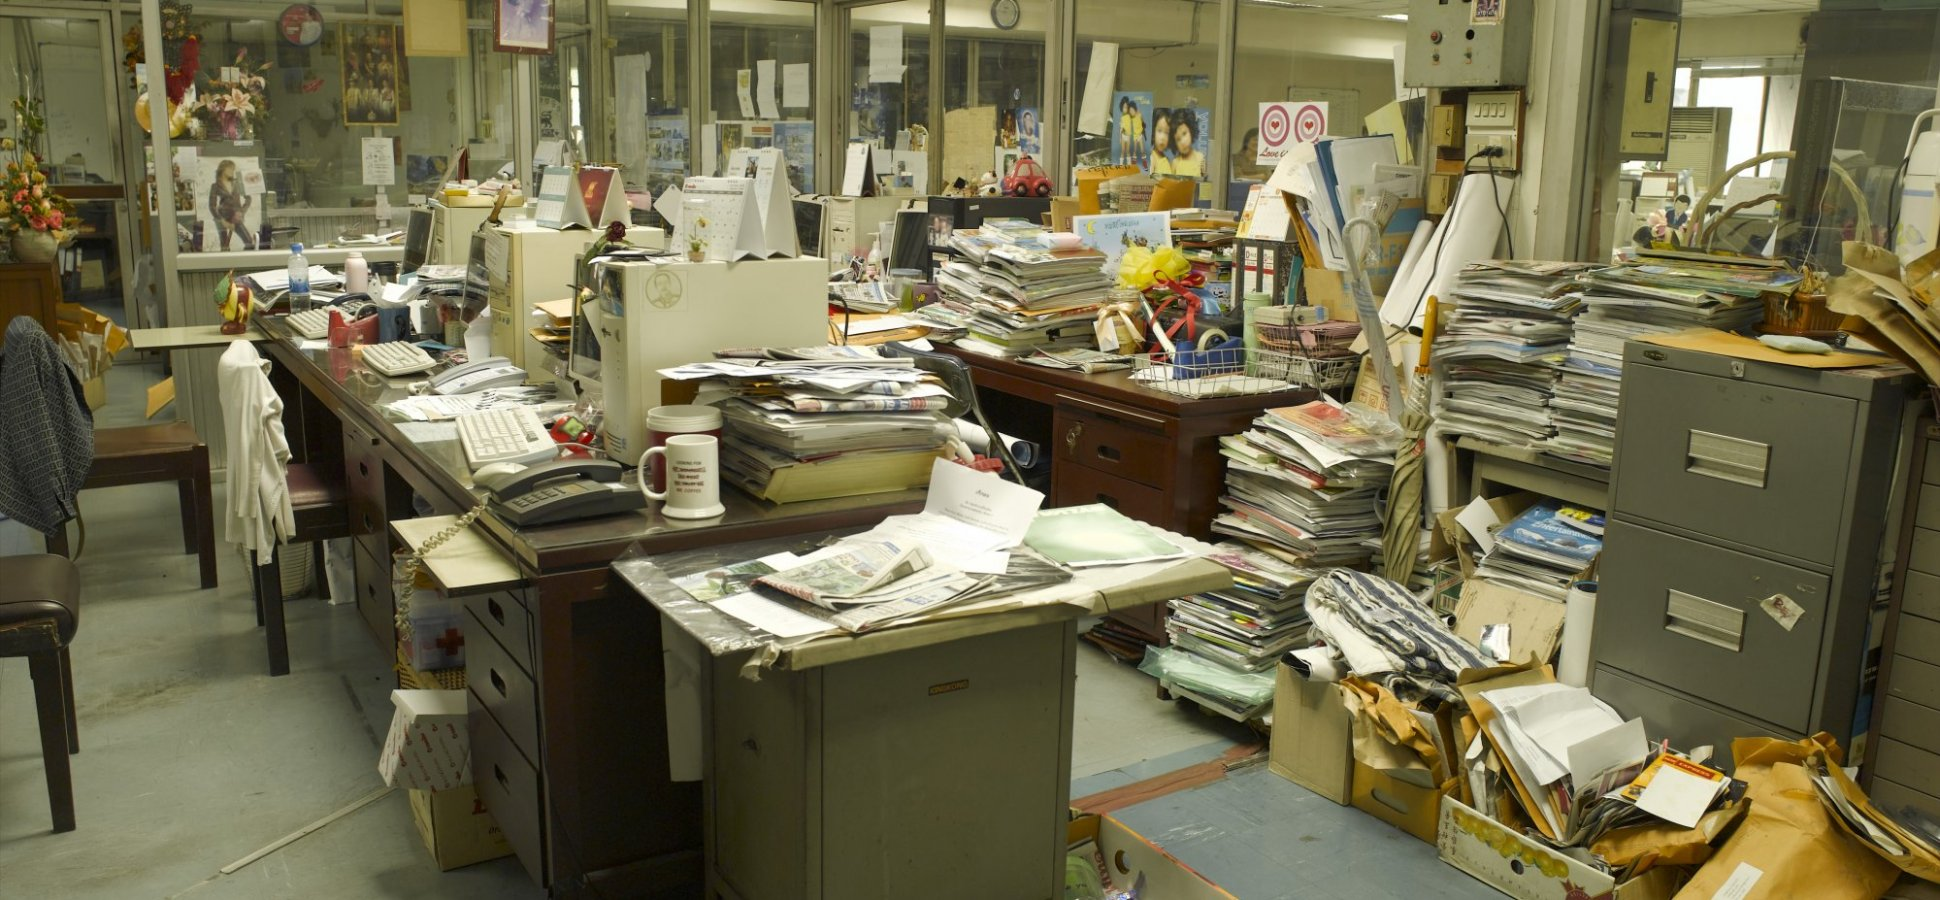 Open-Plan Offices Literally Make You Stupid, According to Harvard